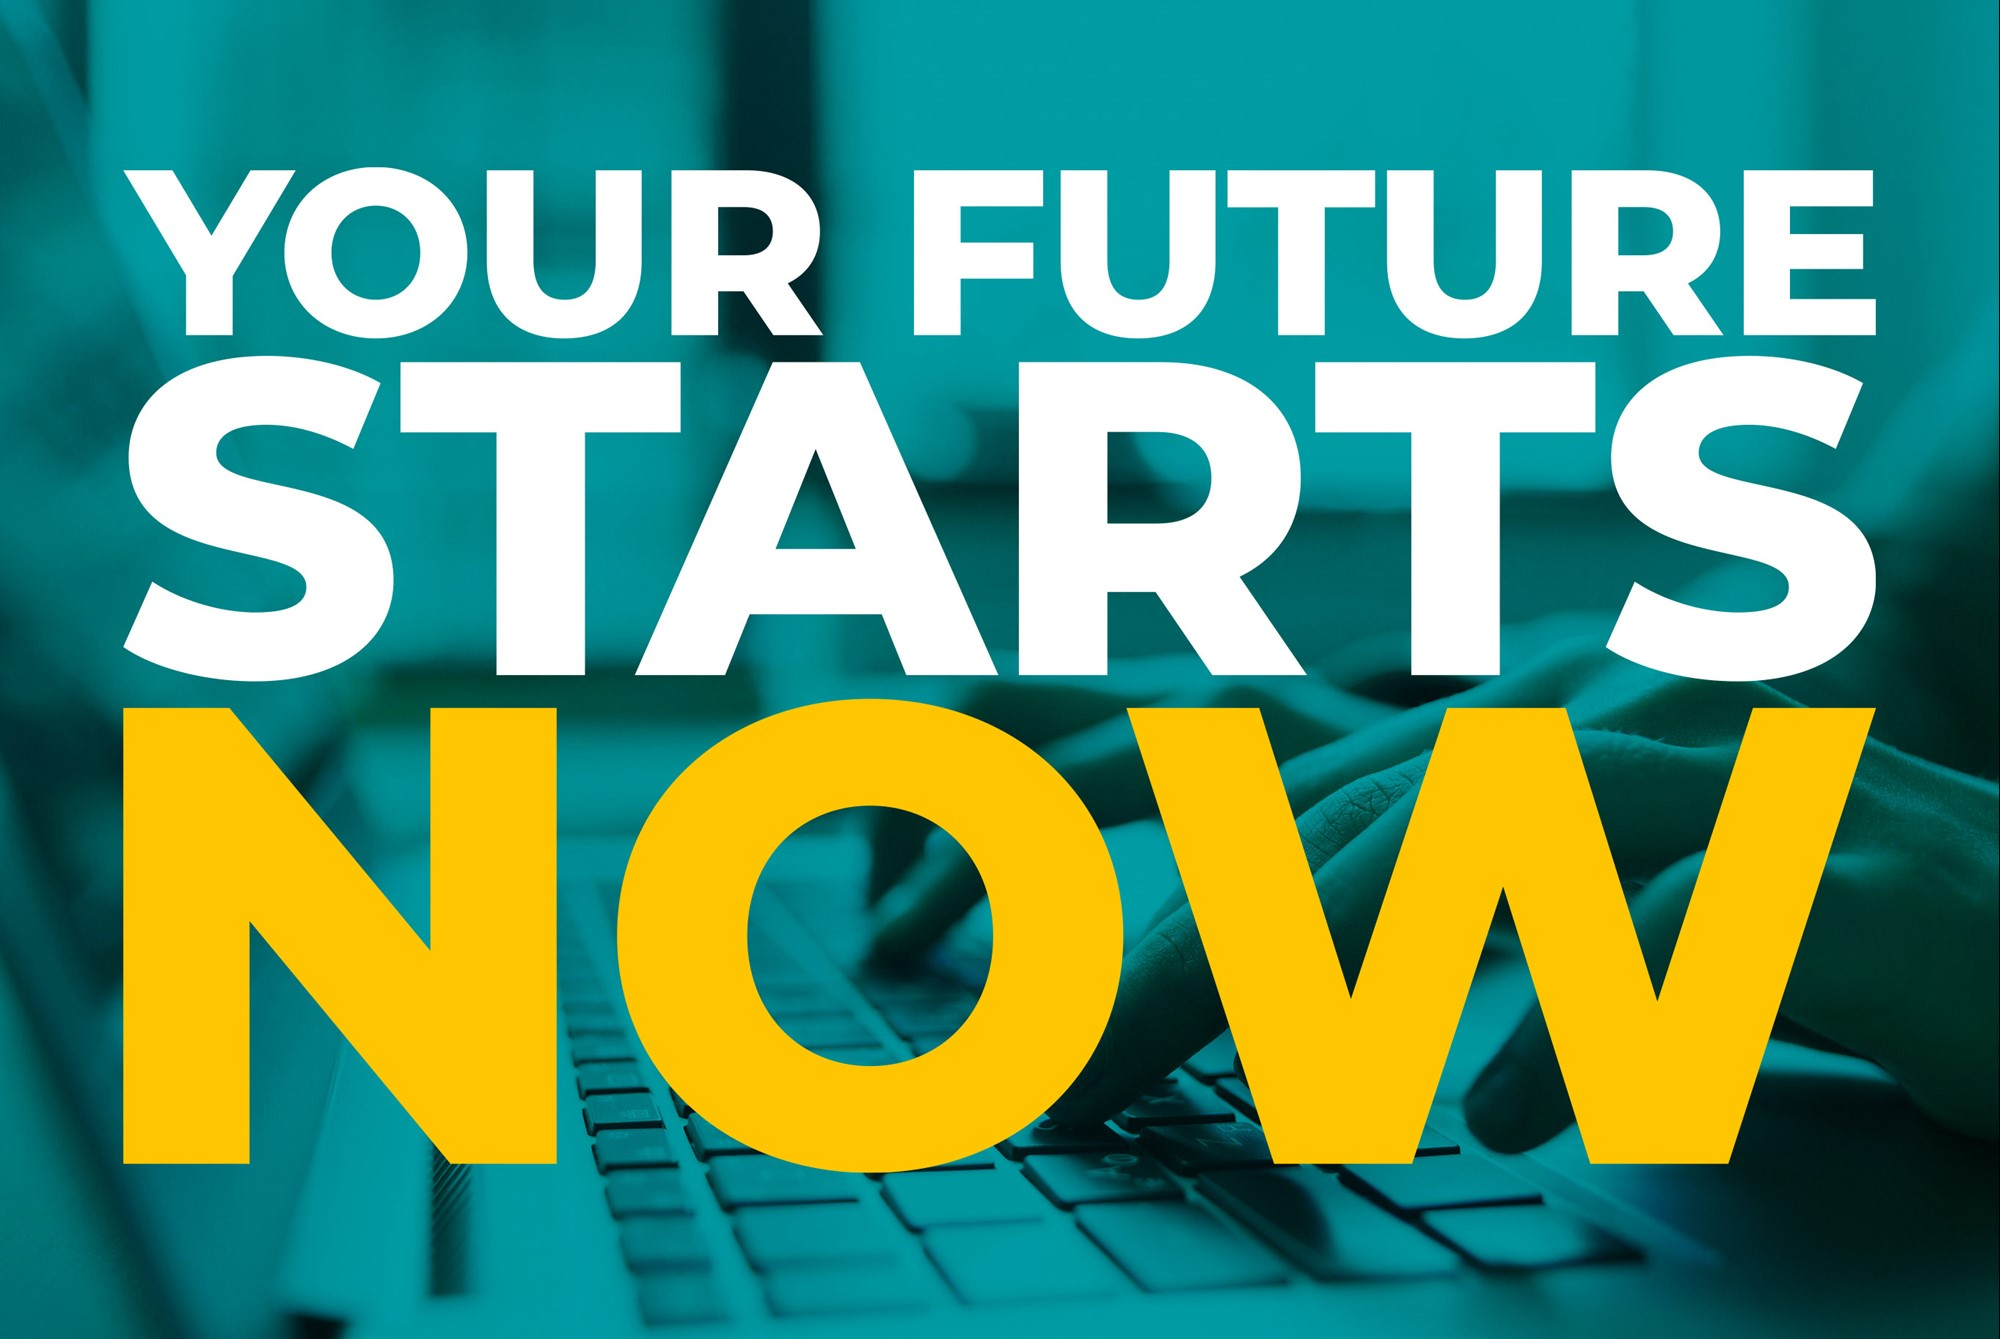 Your future starts now - apply for Webreality's bursary in 2020.